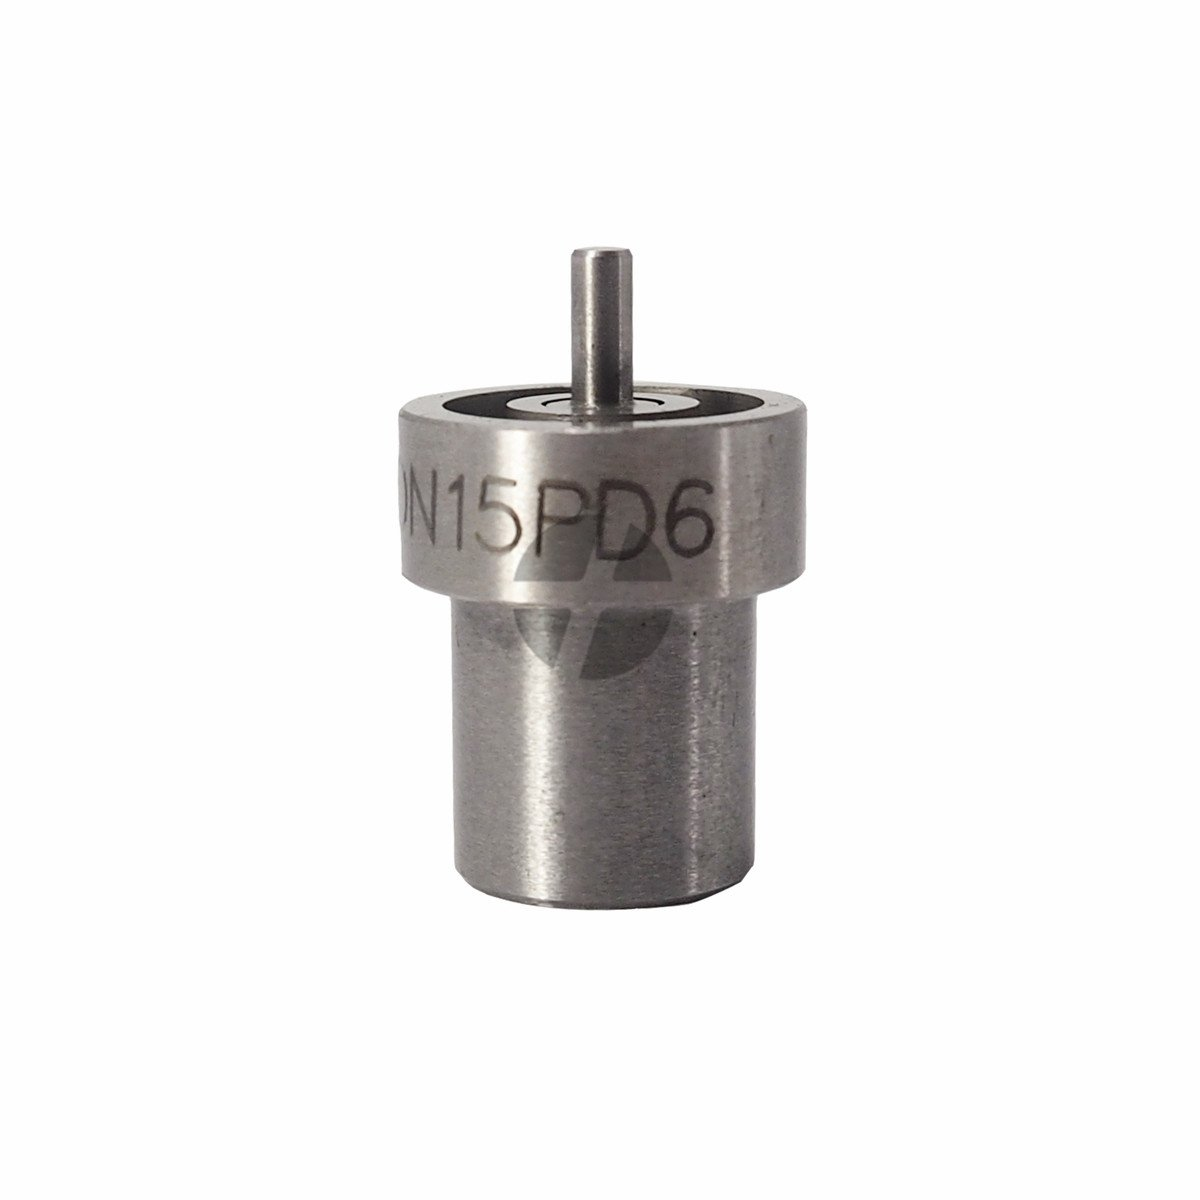 automatic fuel nozzle repair 093400-5060/DN15PD6 apply for Mitsubishi CHINA LUTONG PARTS PLANT